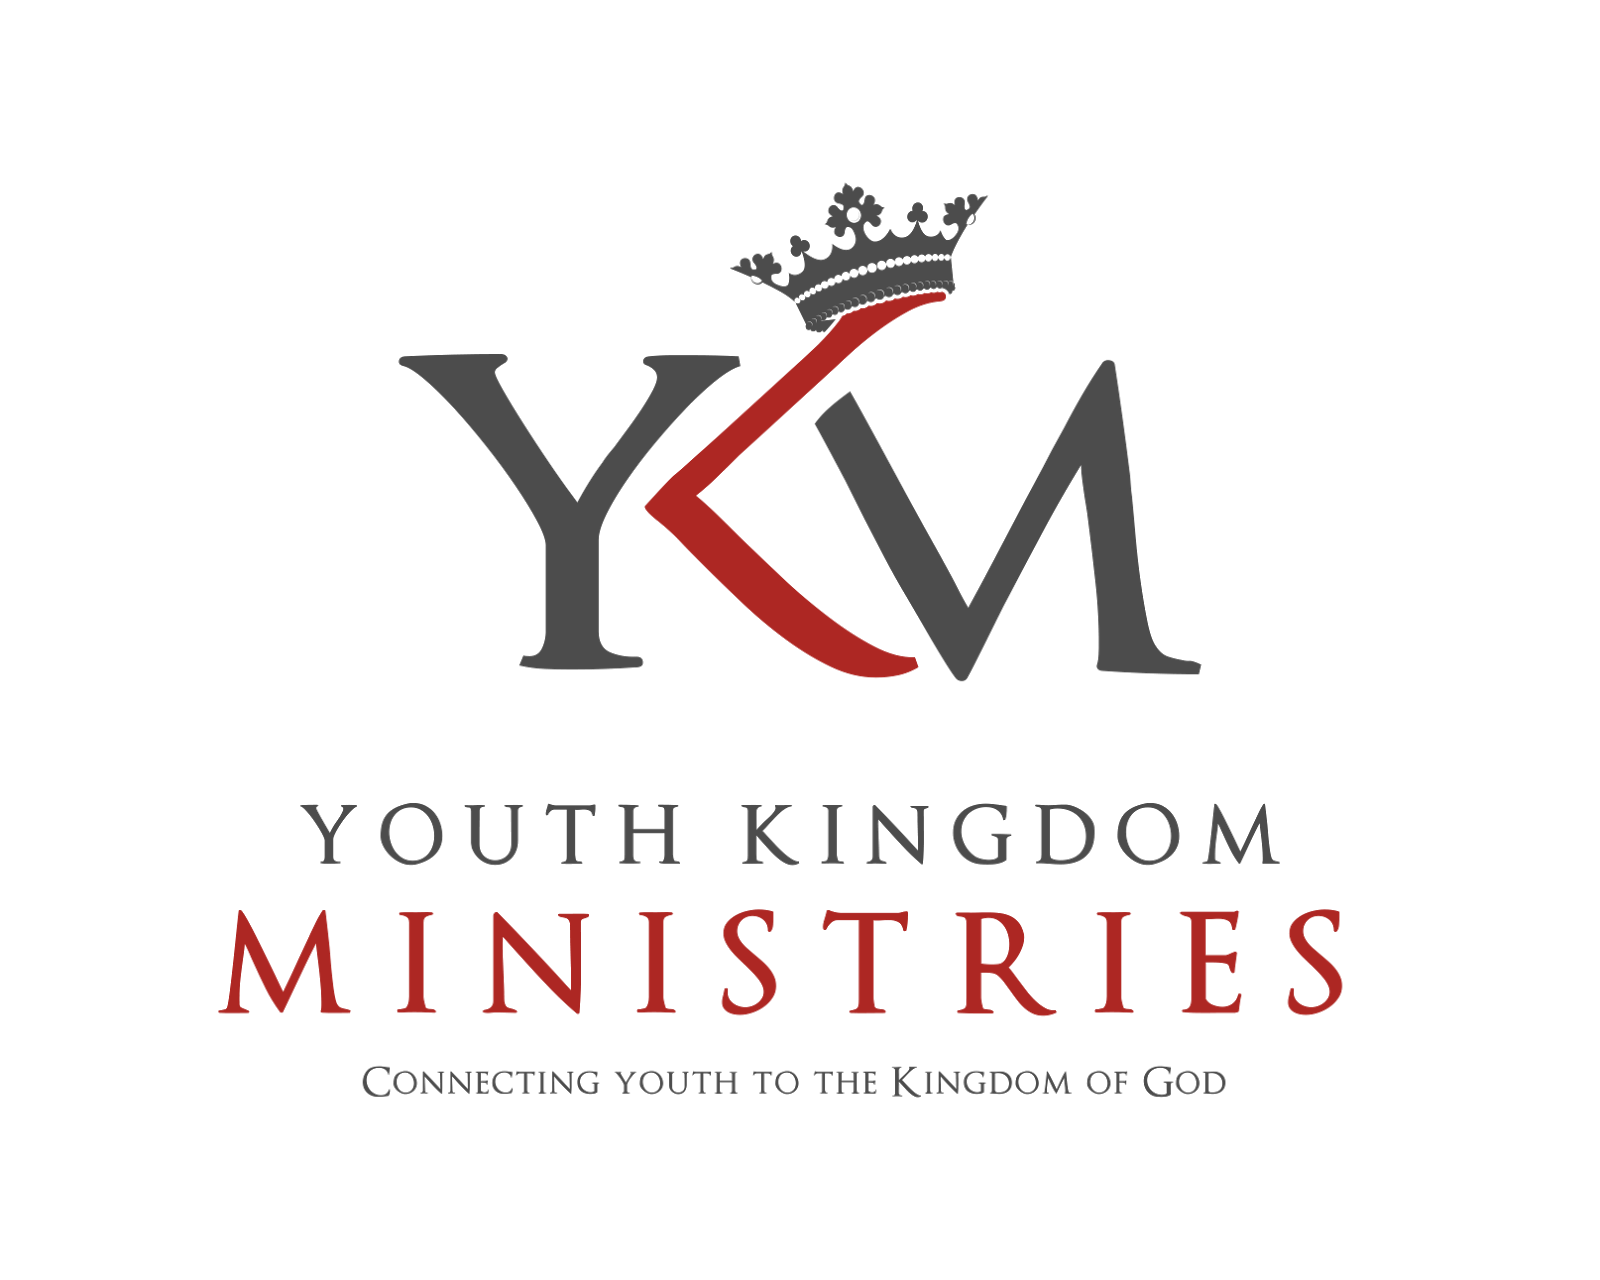 WELCOME TO YKM WEBSITE